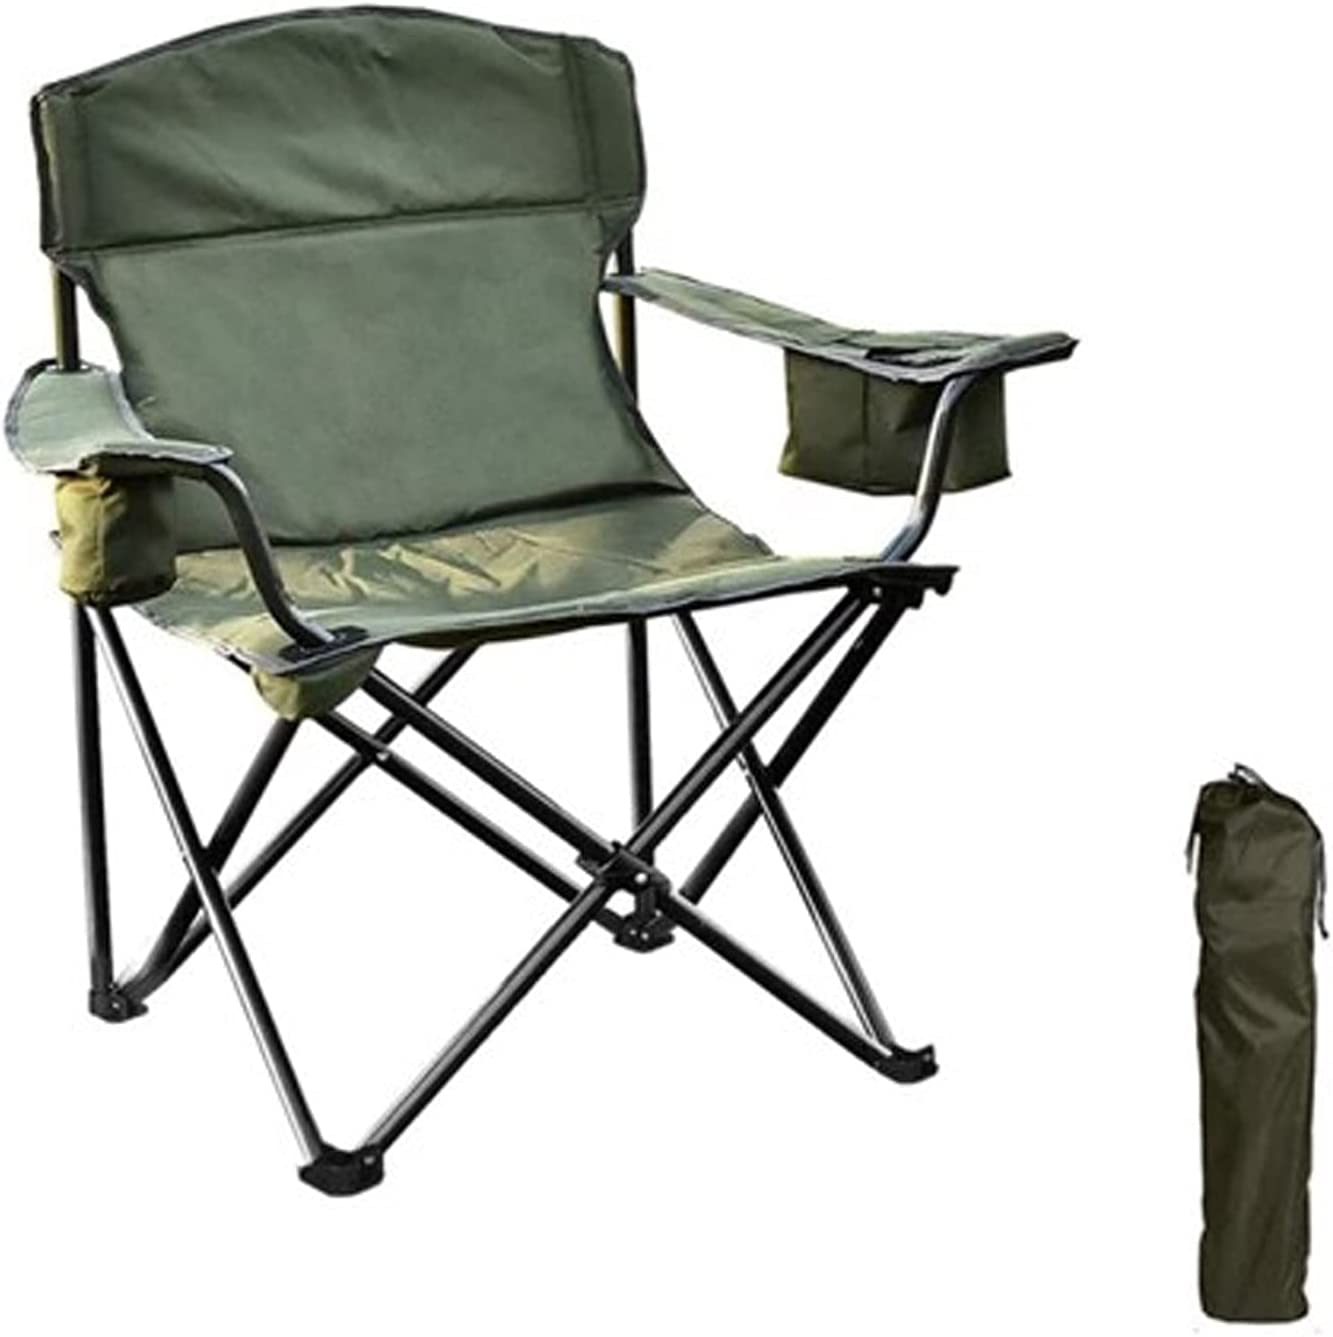 ALLWIN Oversized Camping Chair Al sold out. with P Folding Cooler Ranking TOP5 Bag